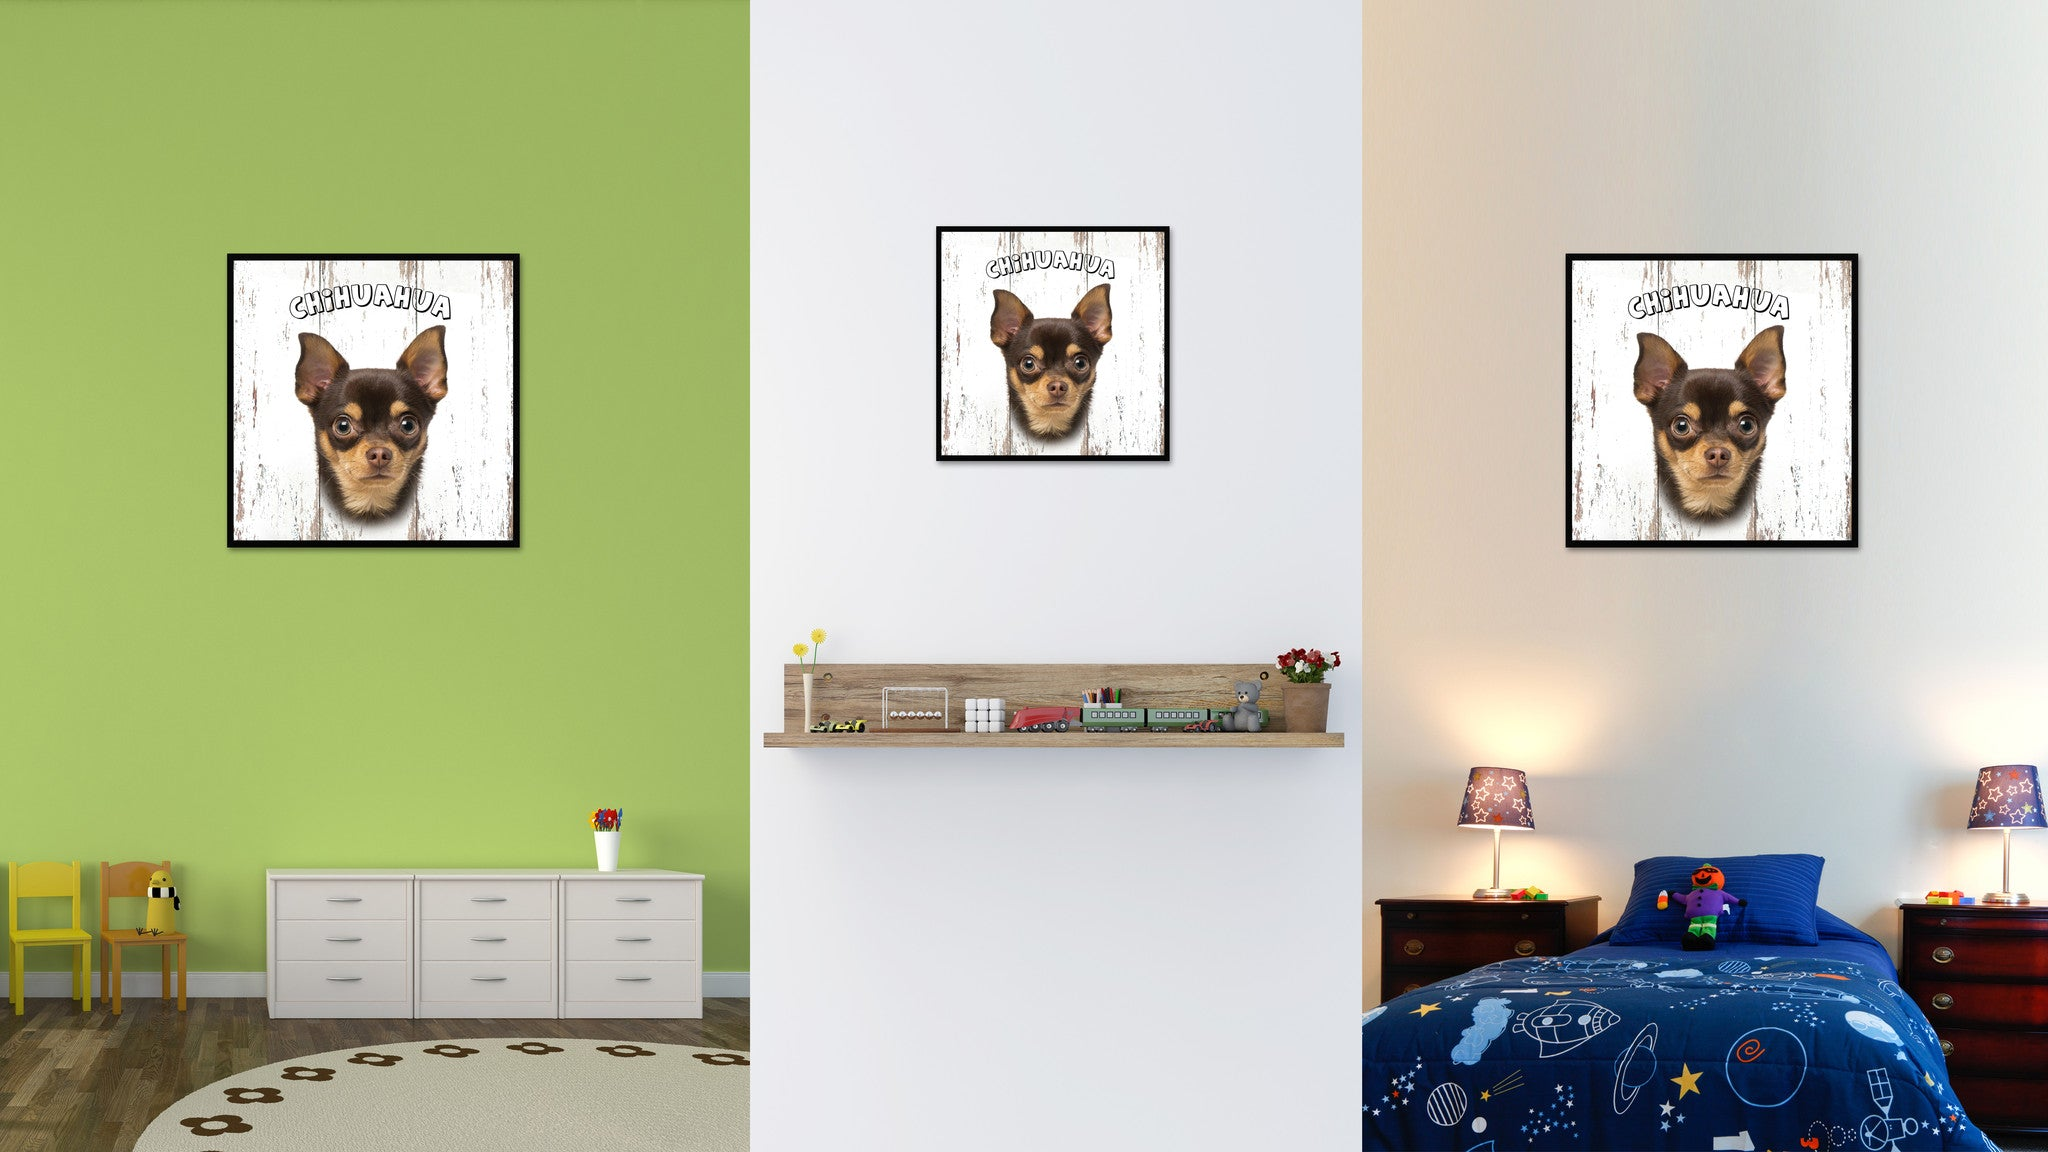 Chihuahua Dog Canvas Print Picture Frame Gift Home Decor Wall Art Decoration